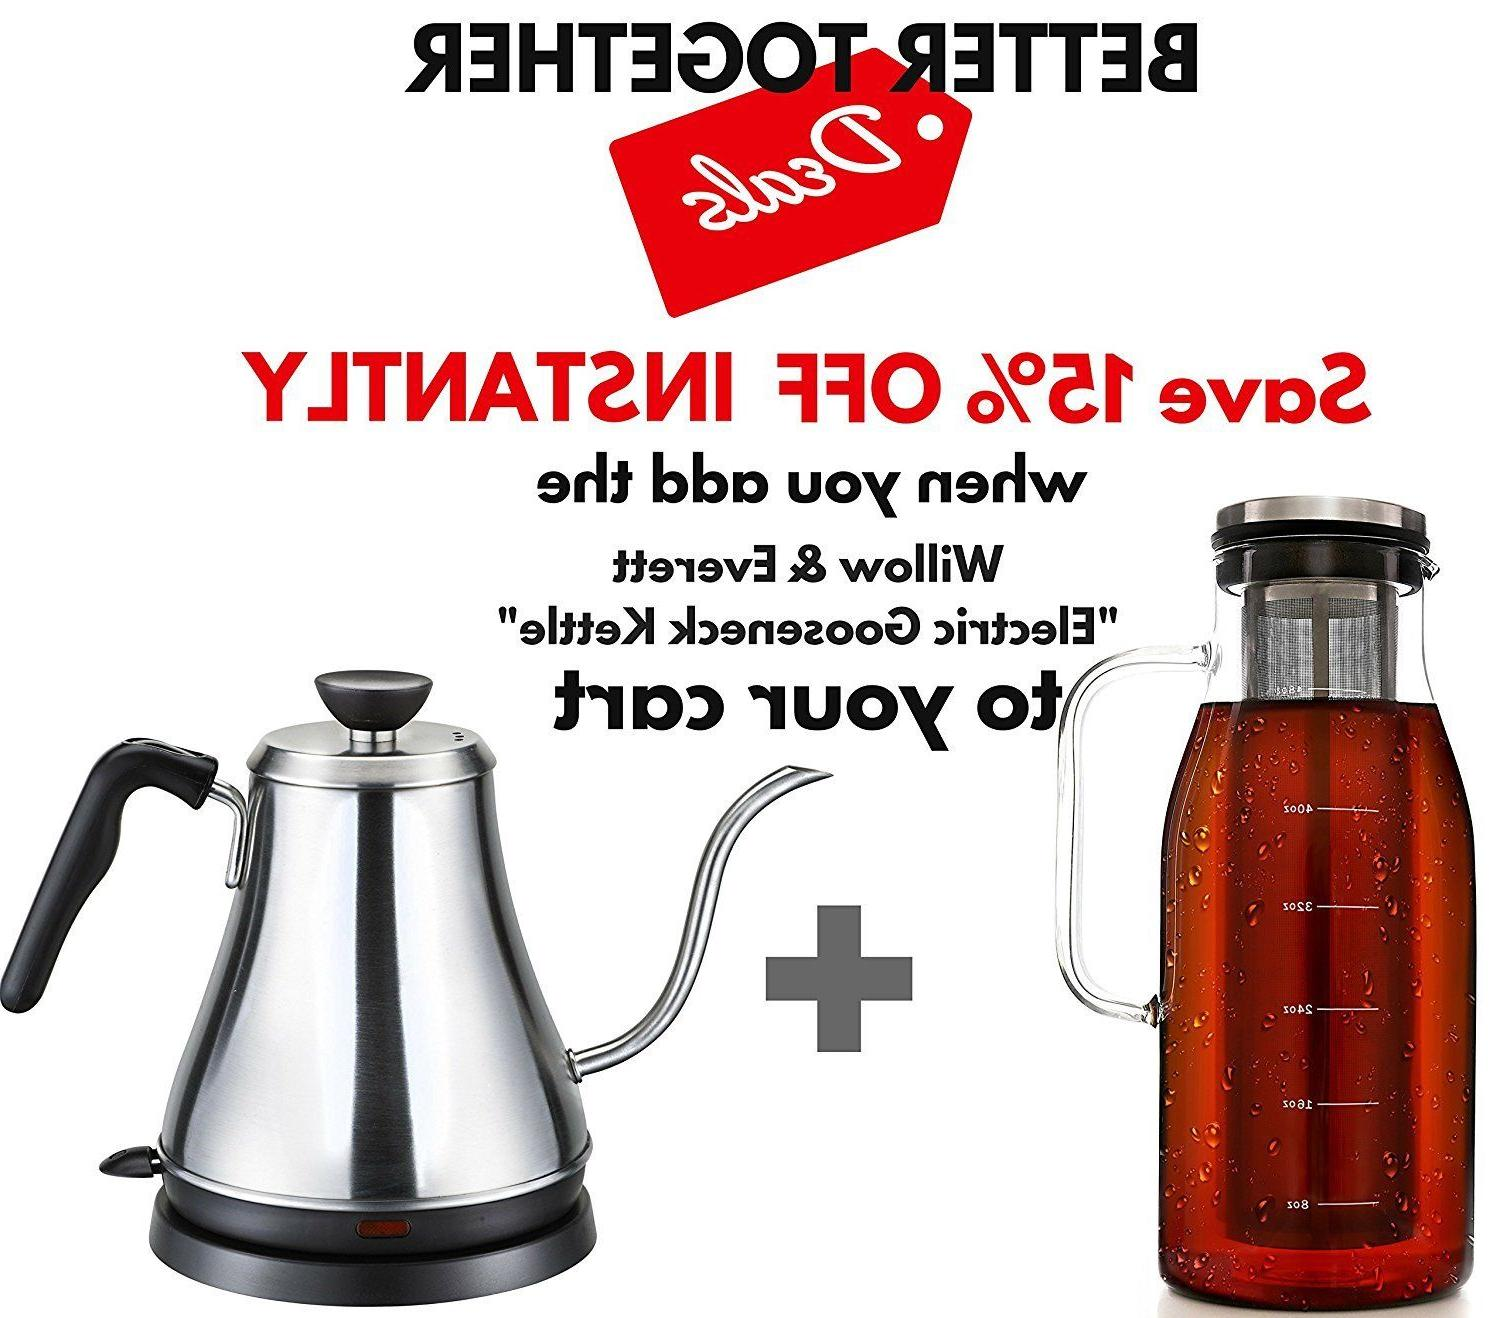 Sealing Cold Brew Maker - 1.5 Quarts Airtight Brewed Iced Coffee Maker...